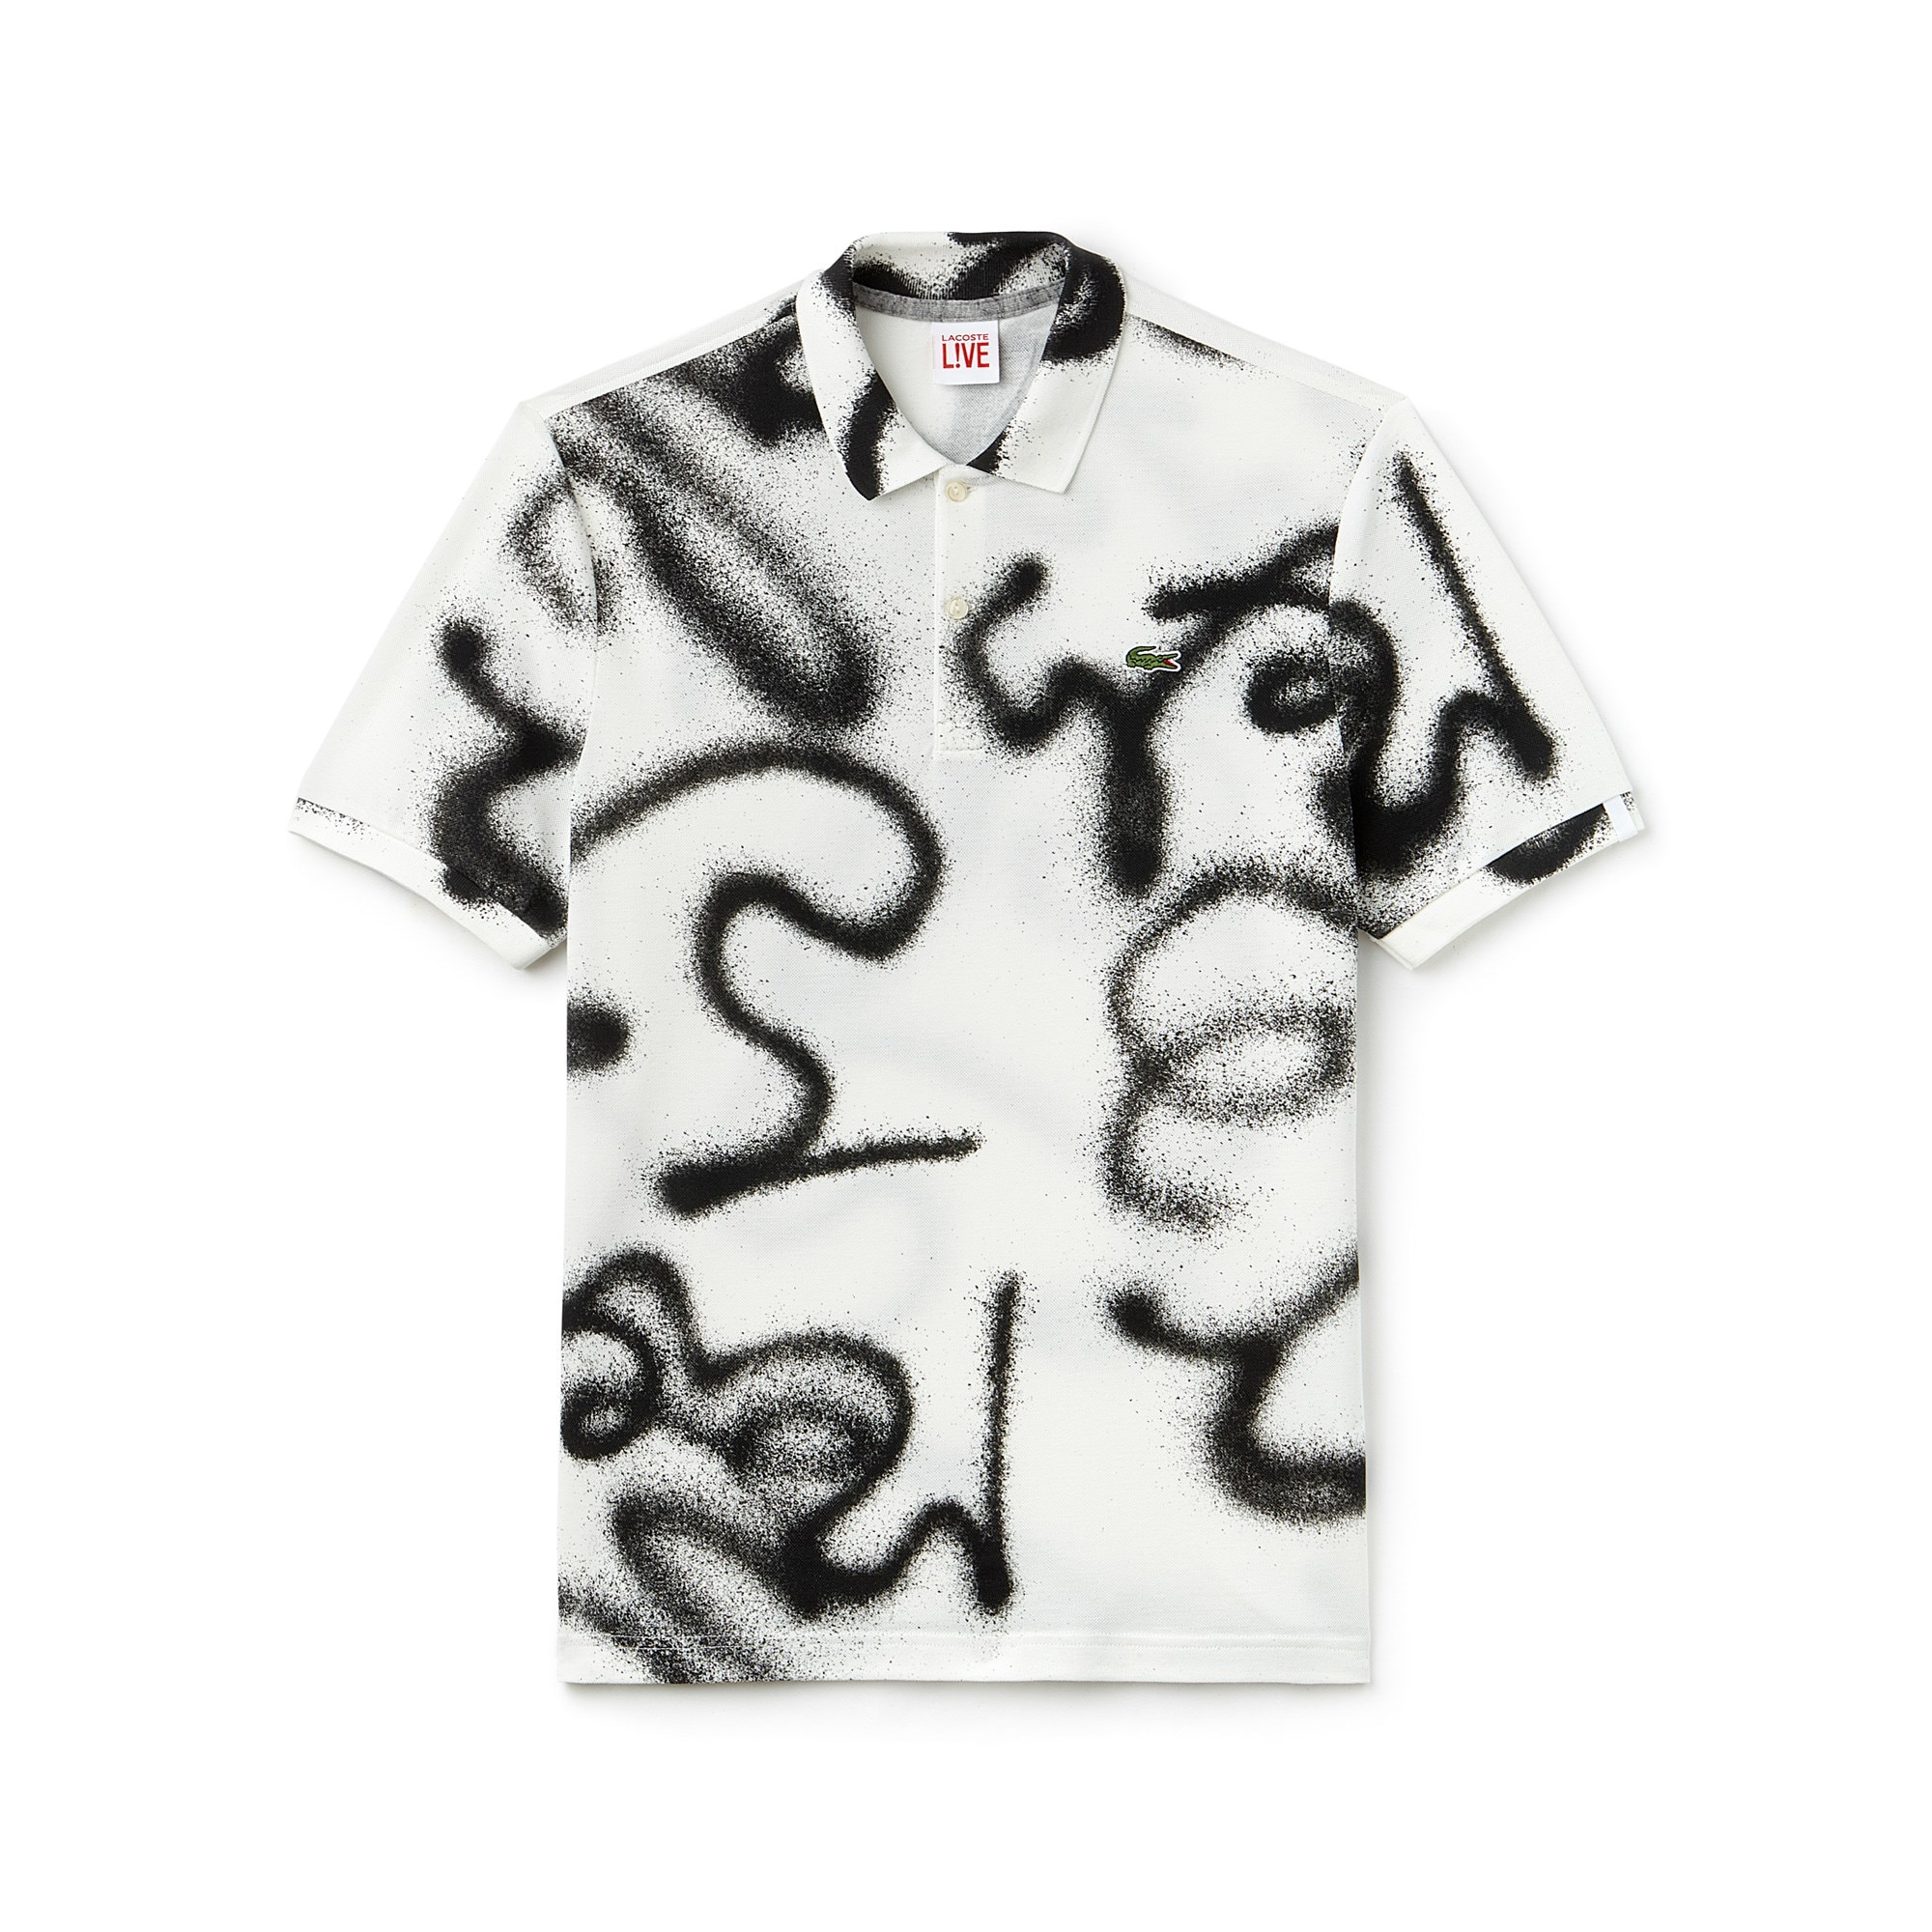 Men's Lacoste LIVE Regular Fit Graffiti Print Mini Piqué Polo Shirt